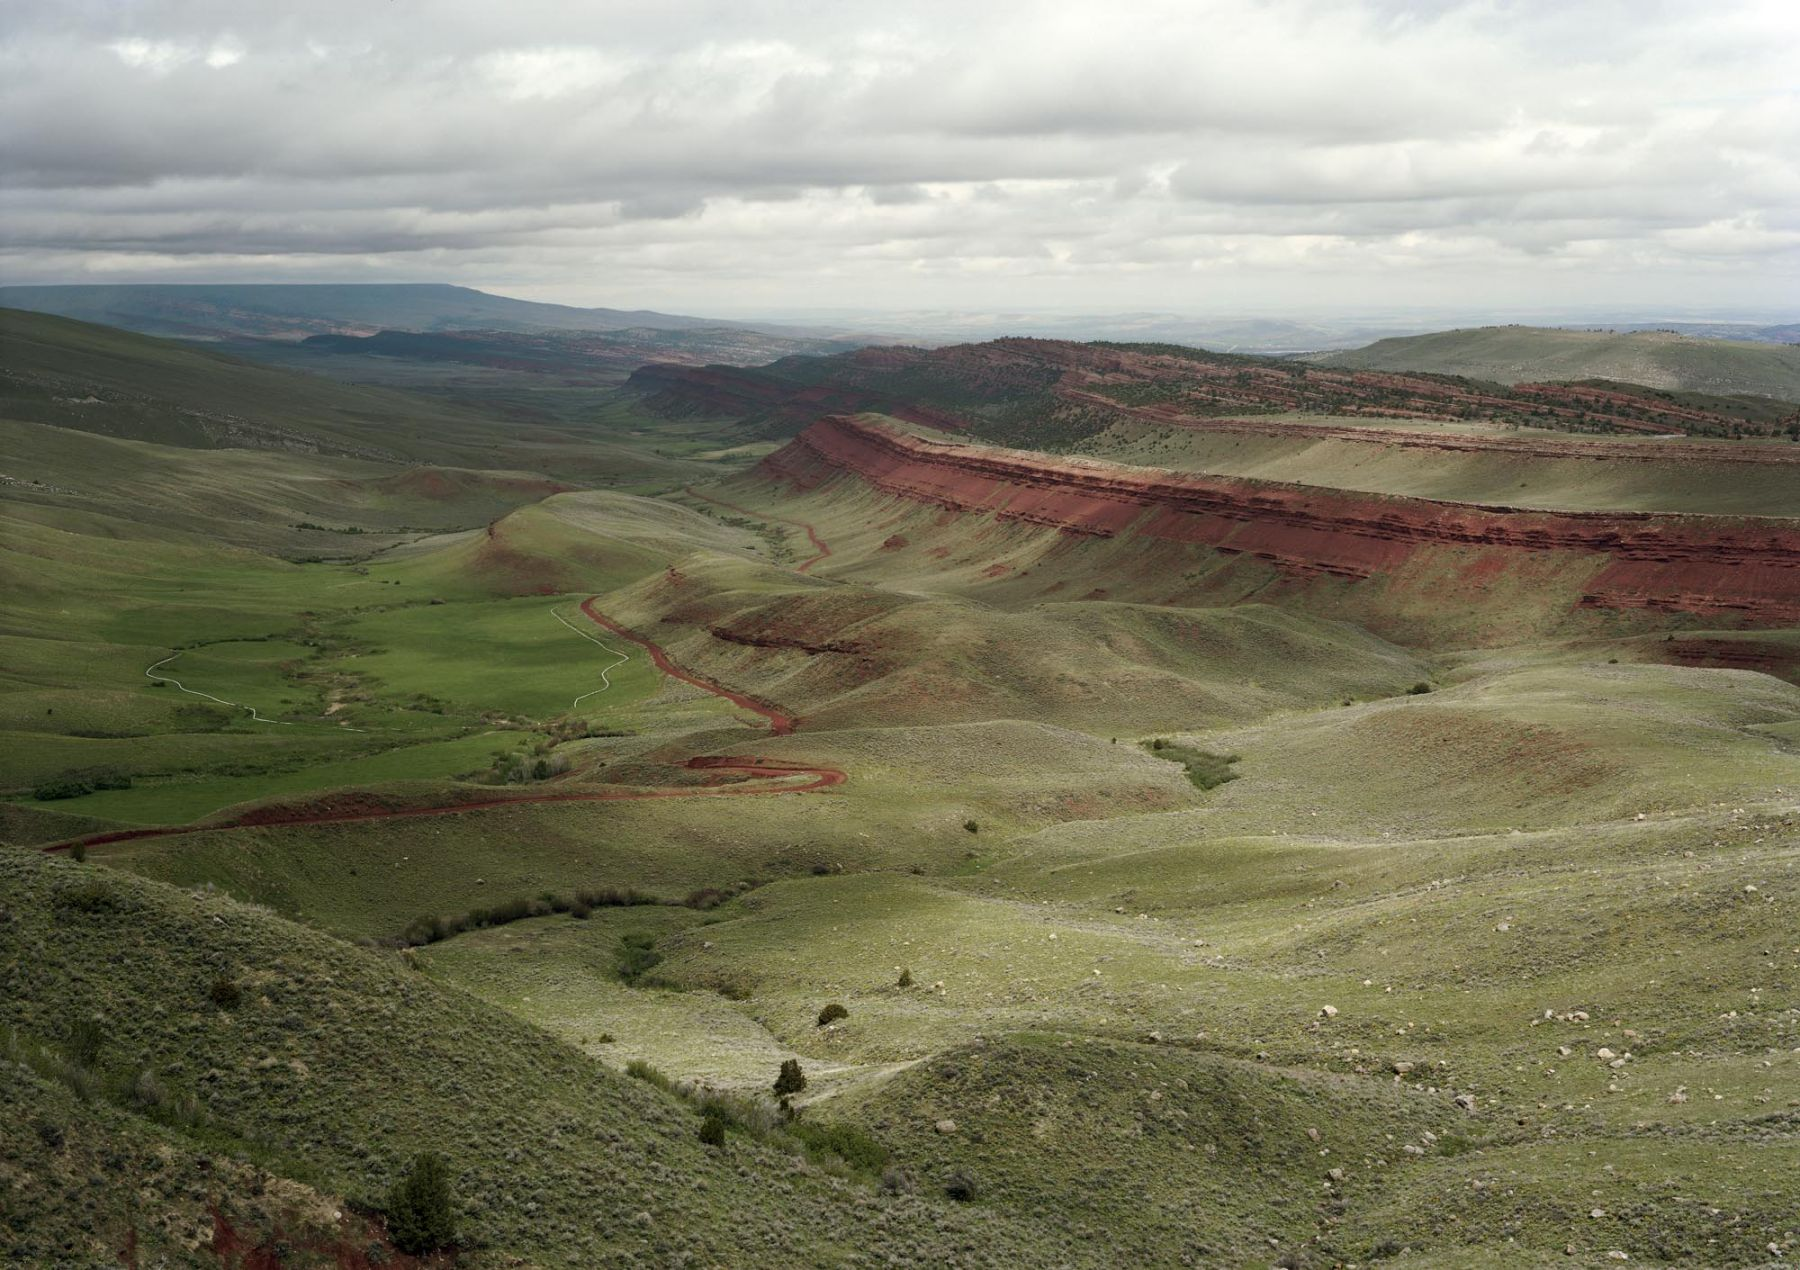 Untitled, Red Canyon, near Lander, Wyoming, 2009, 39 x 55 inch or 55 x 77 inch chromogenic print.